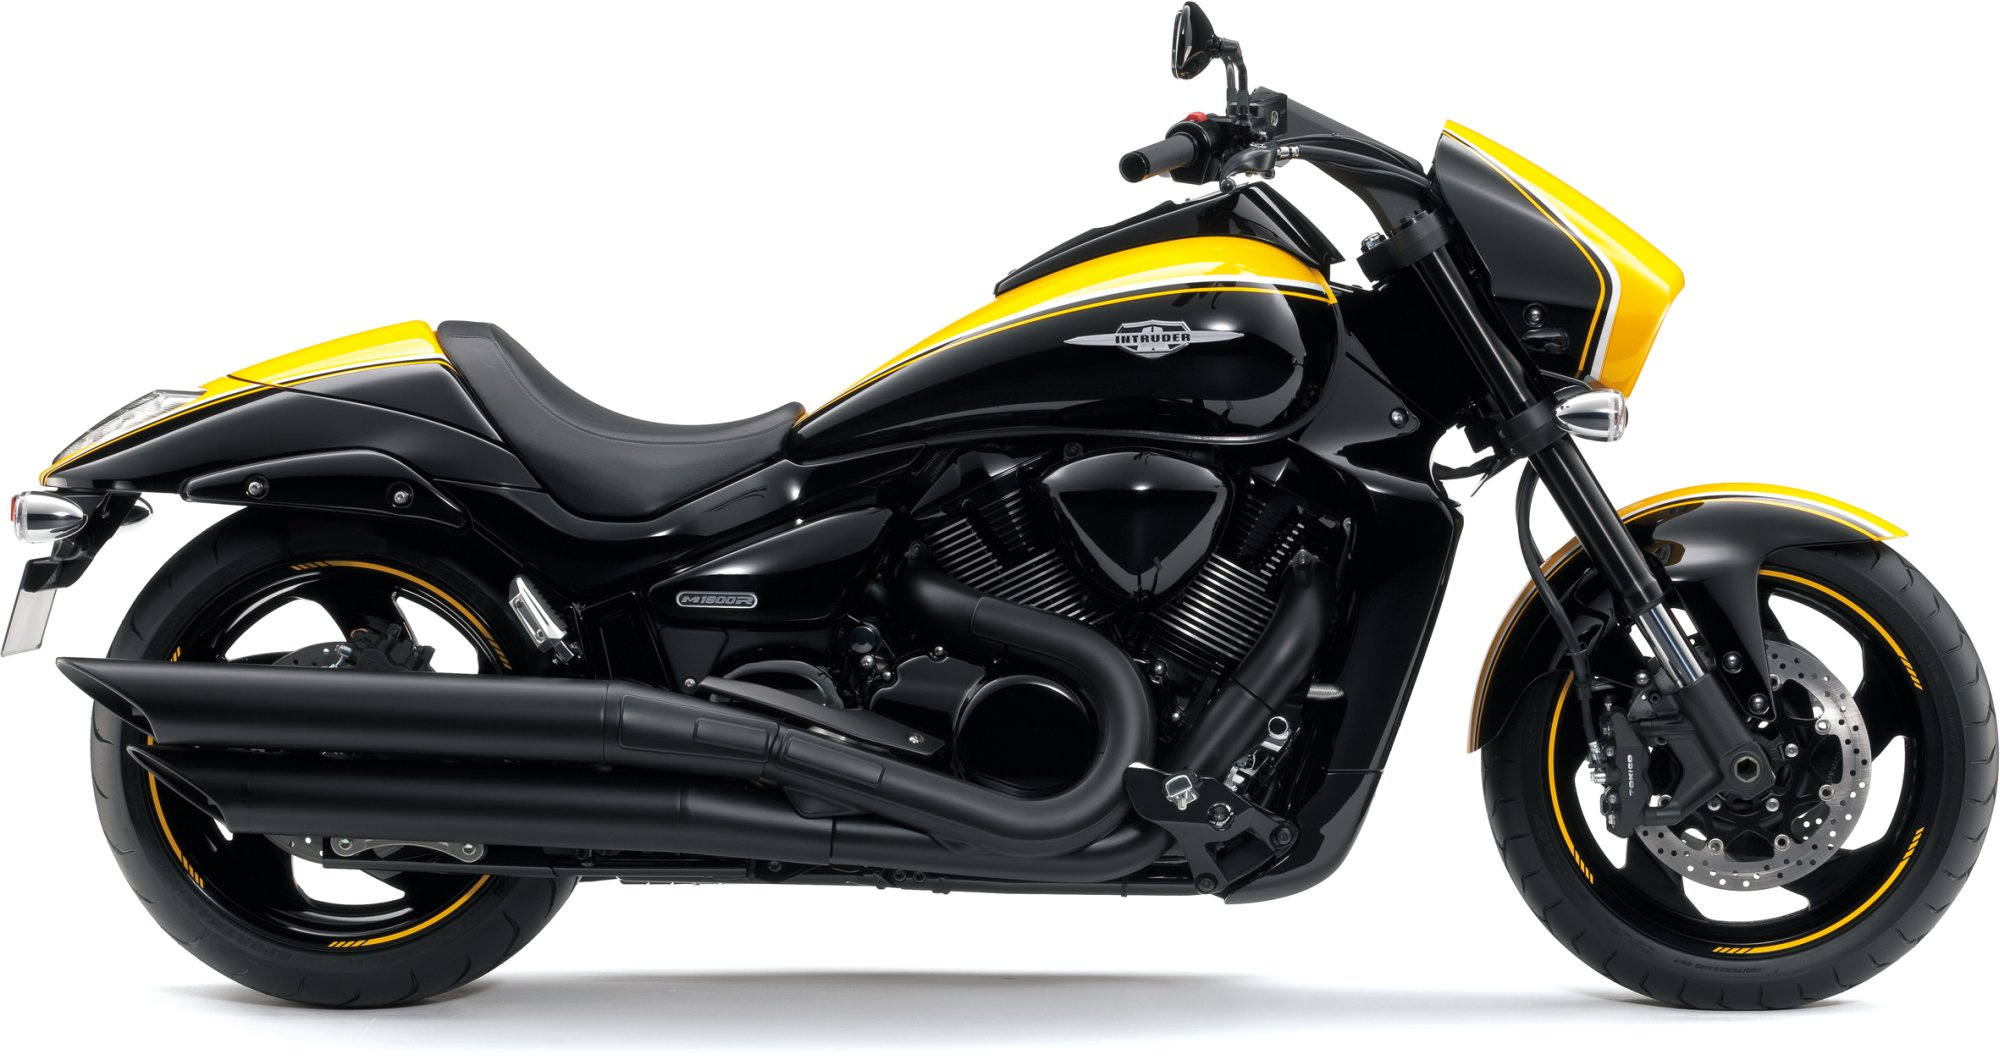 suzuki intruder m1800r bilder und technische daten. Black Bedroom Furniture Sets. Home Design Ideas